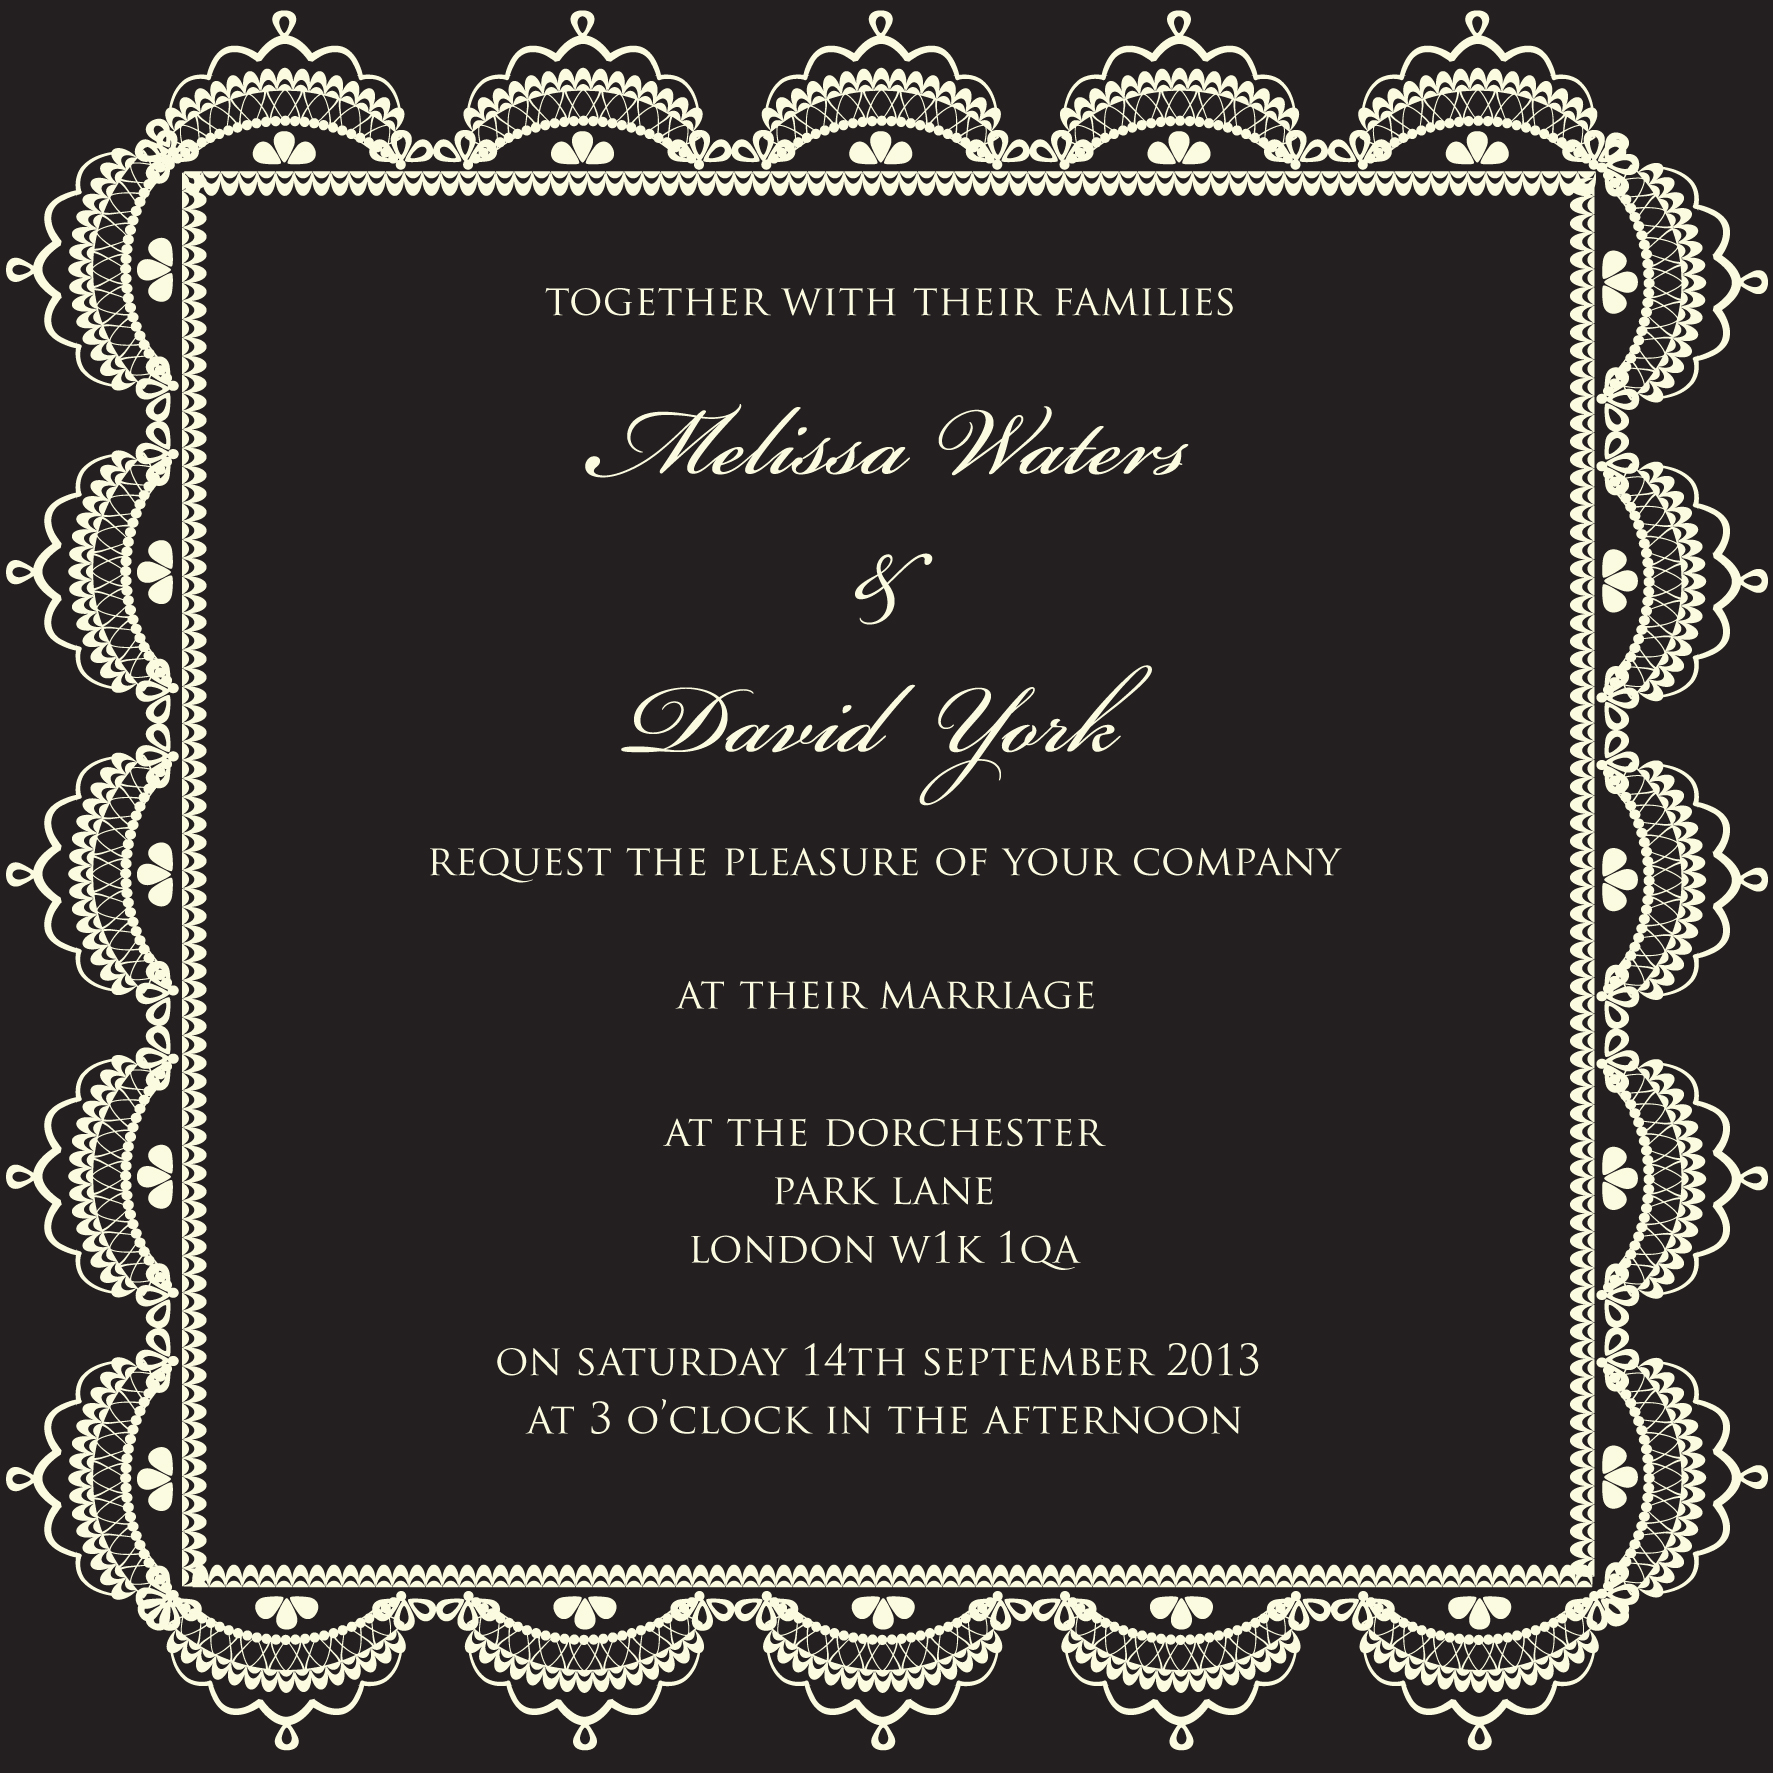 Black and white lace wedding invitation. Autumn winter trends 2013 by Ananyacards.com